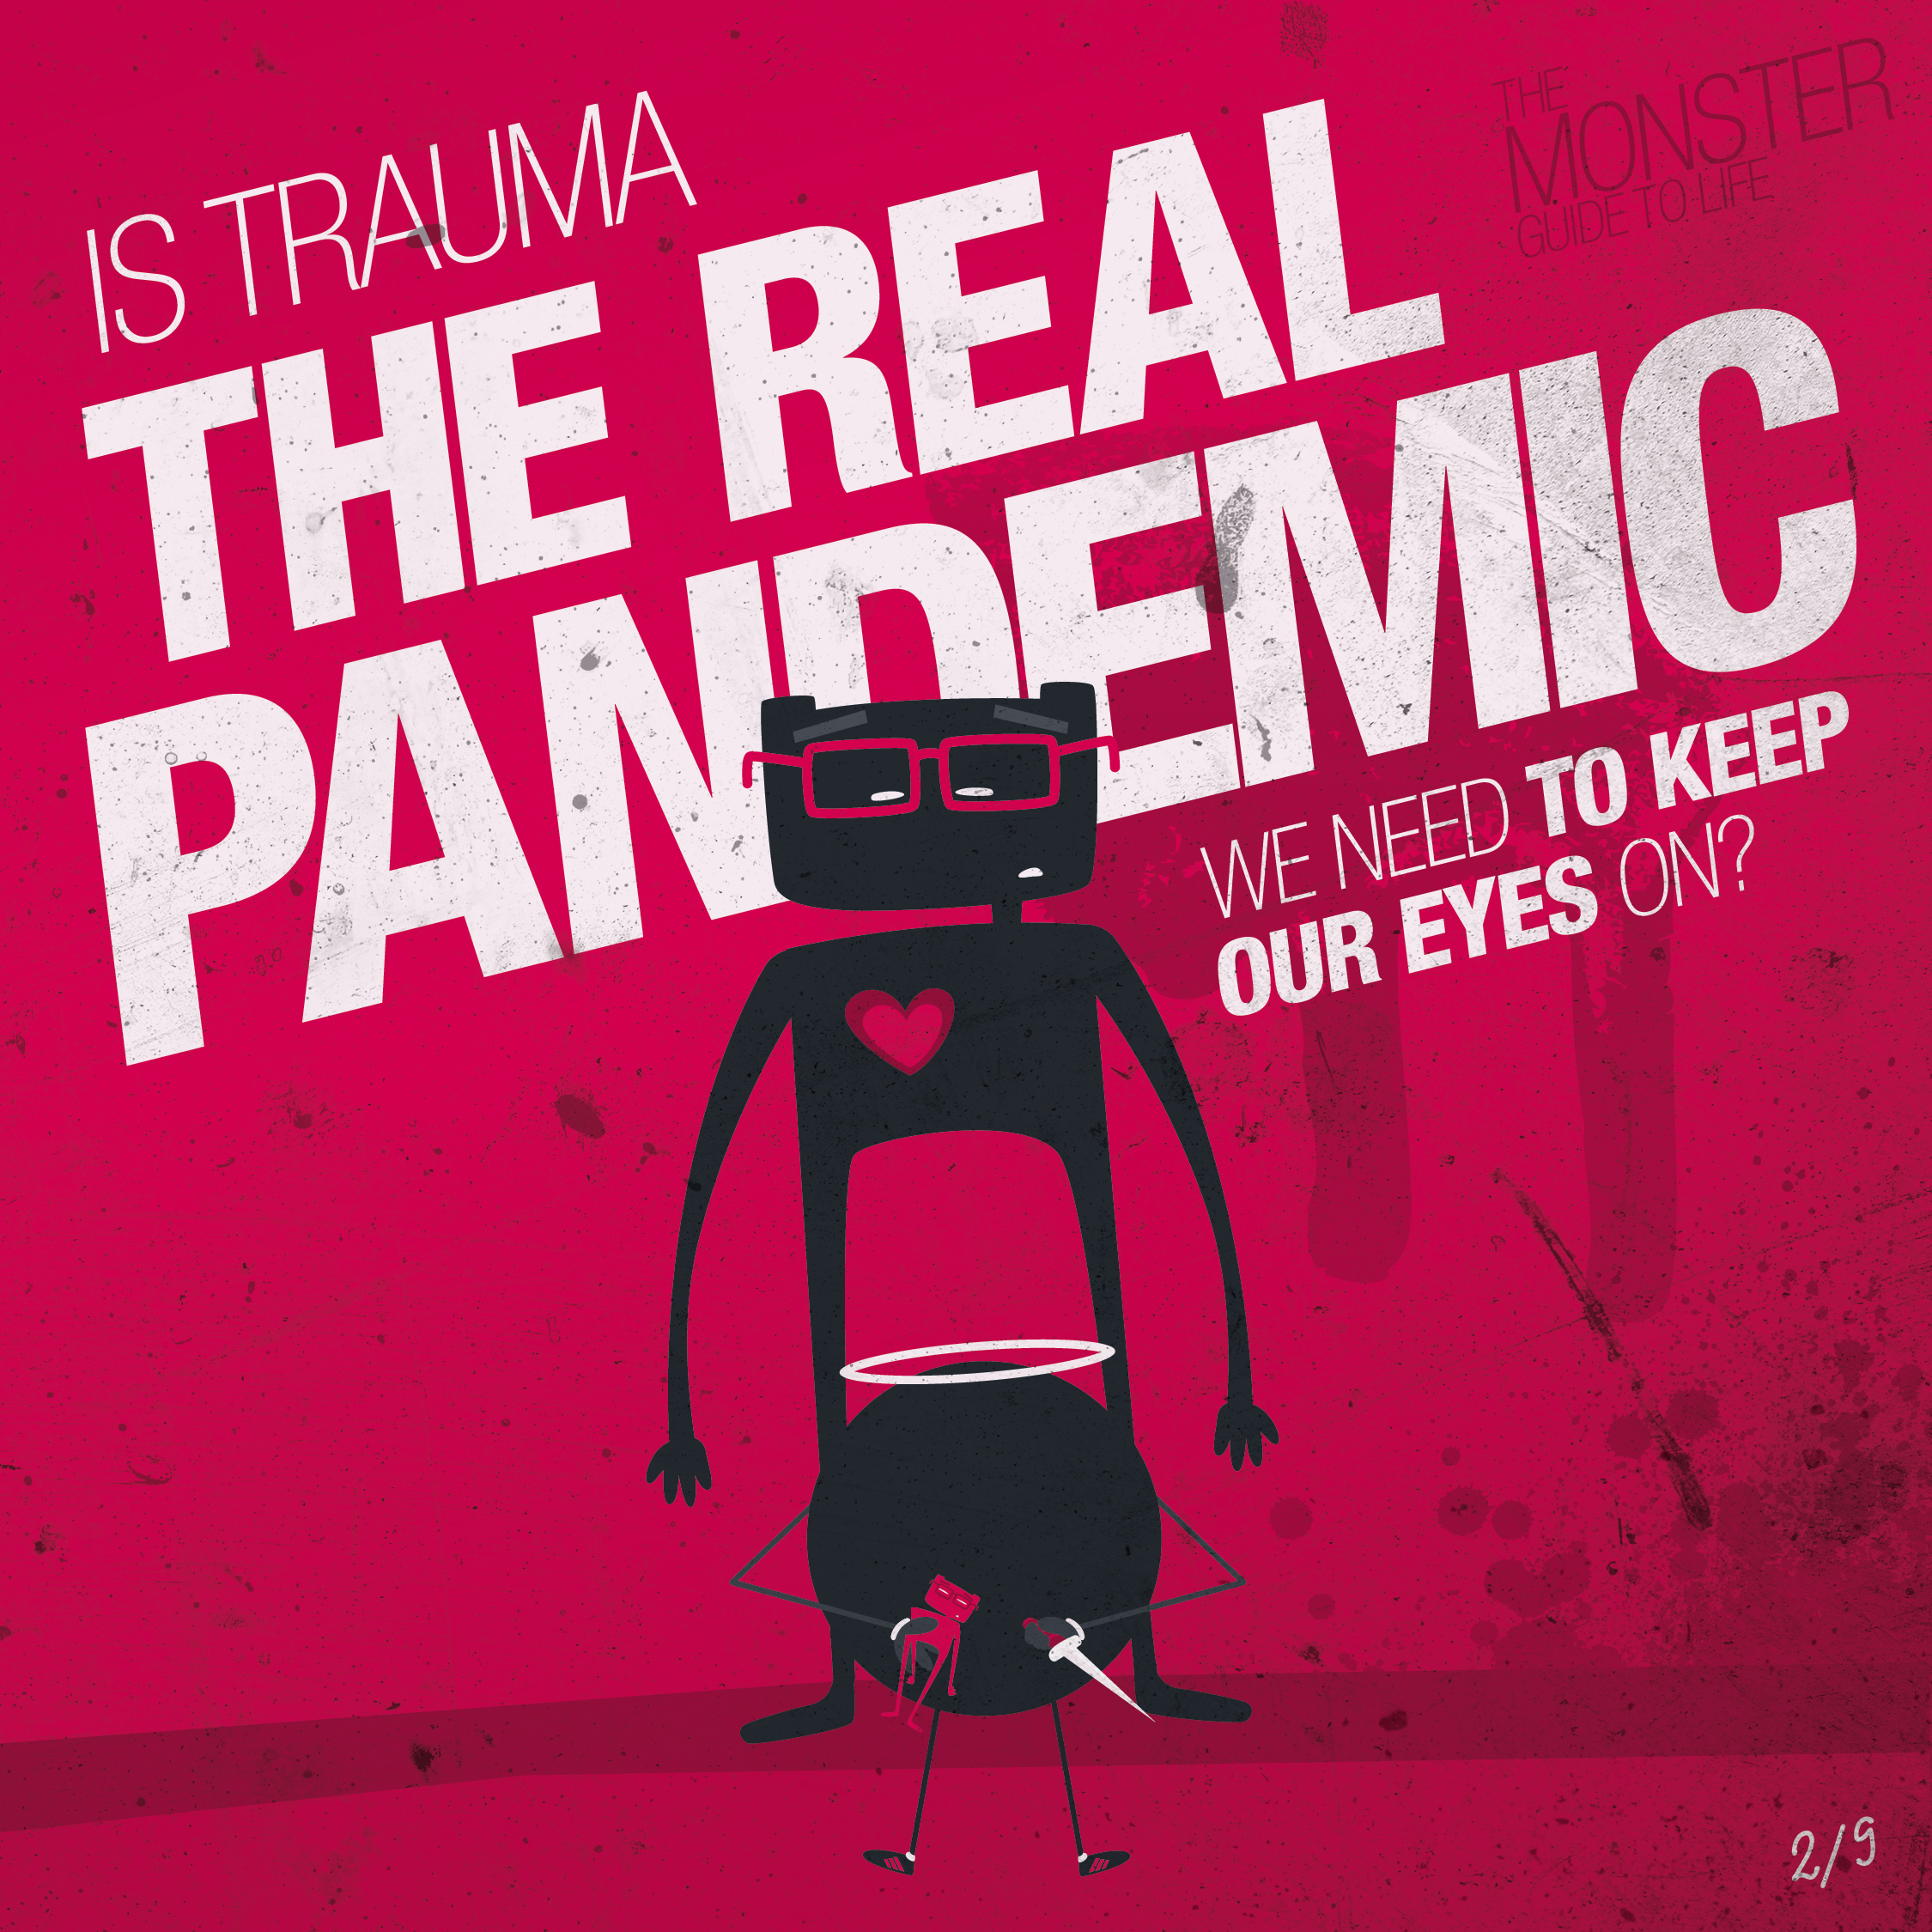 Is trauma the real pandemic we need to keep our eyes on?